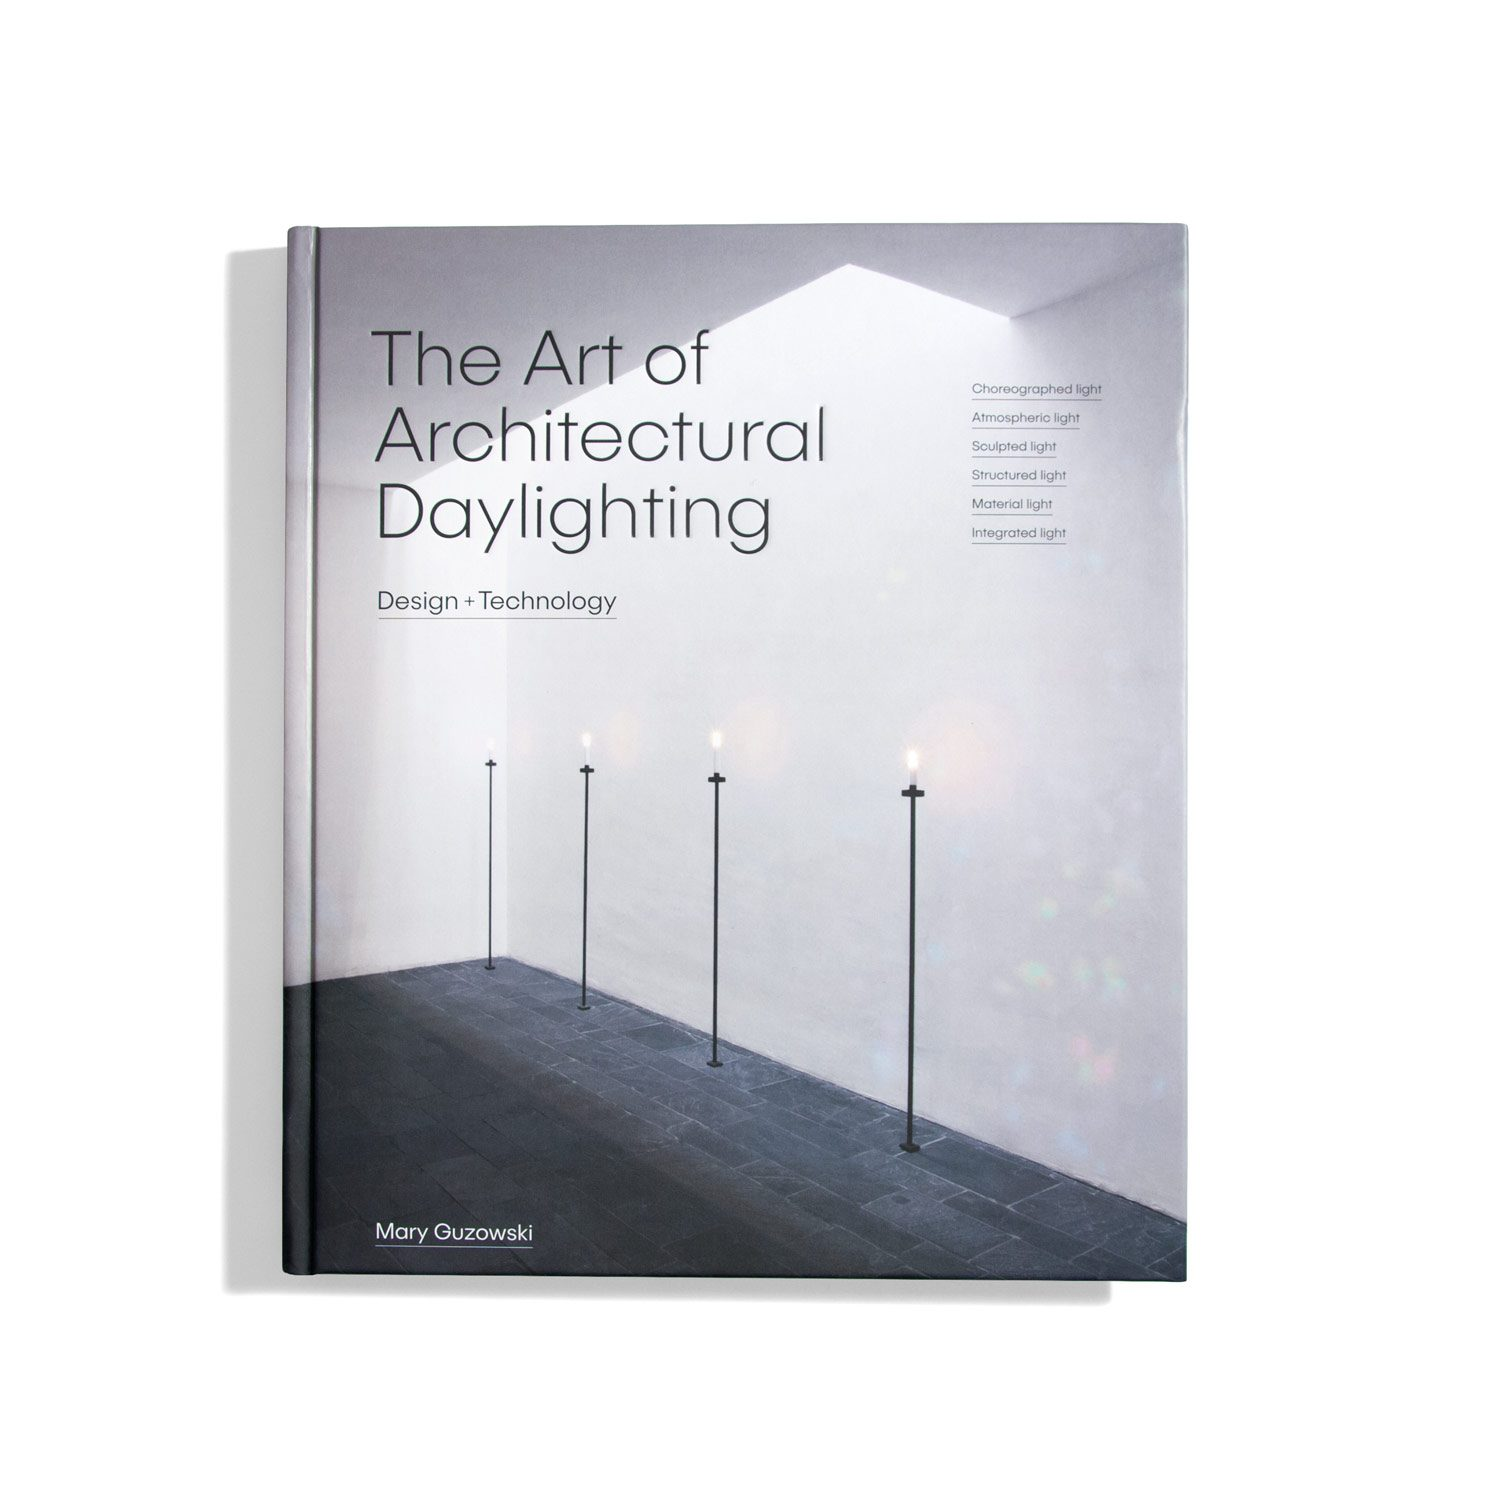 The Art of Architectural Daylighting